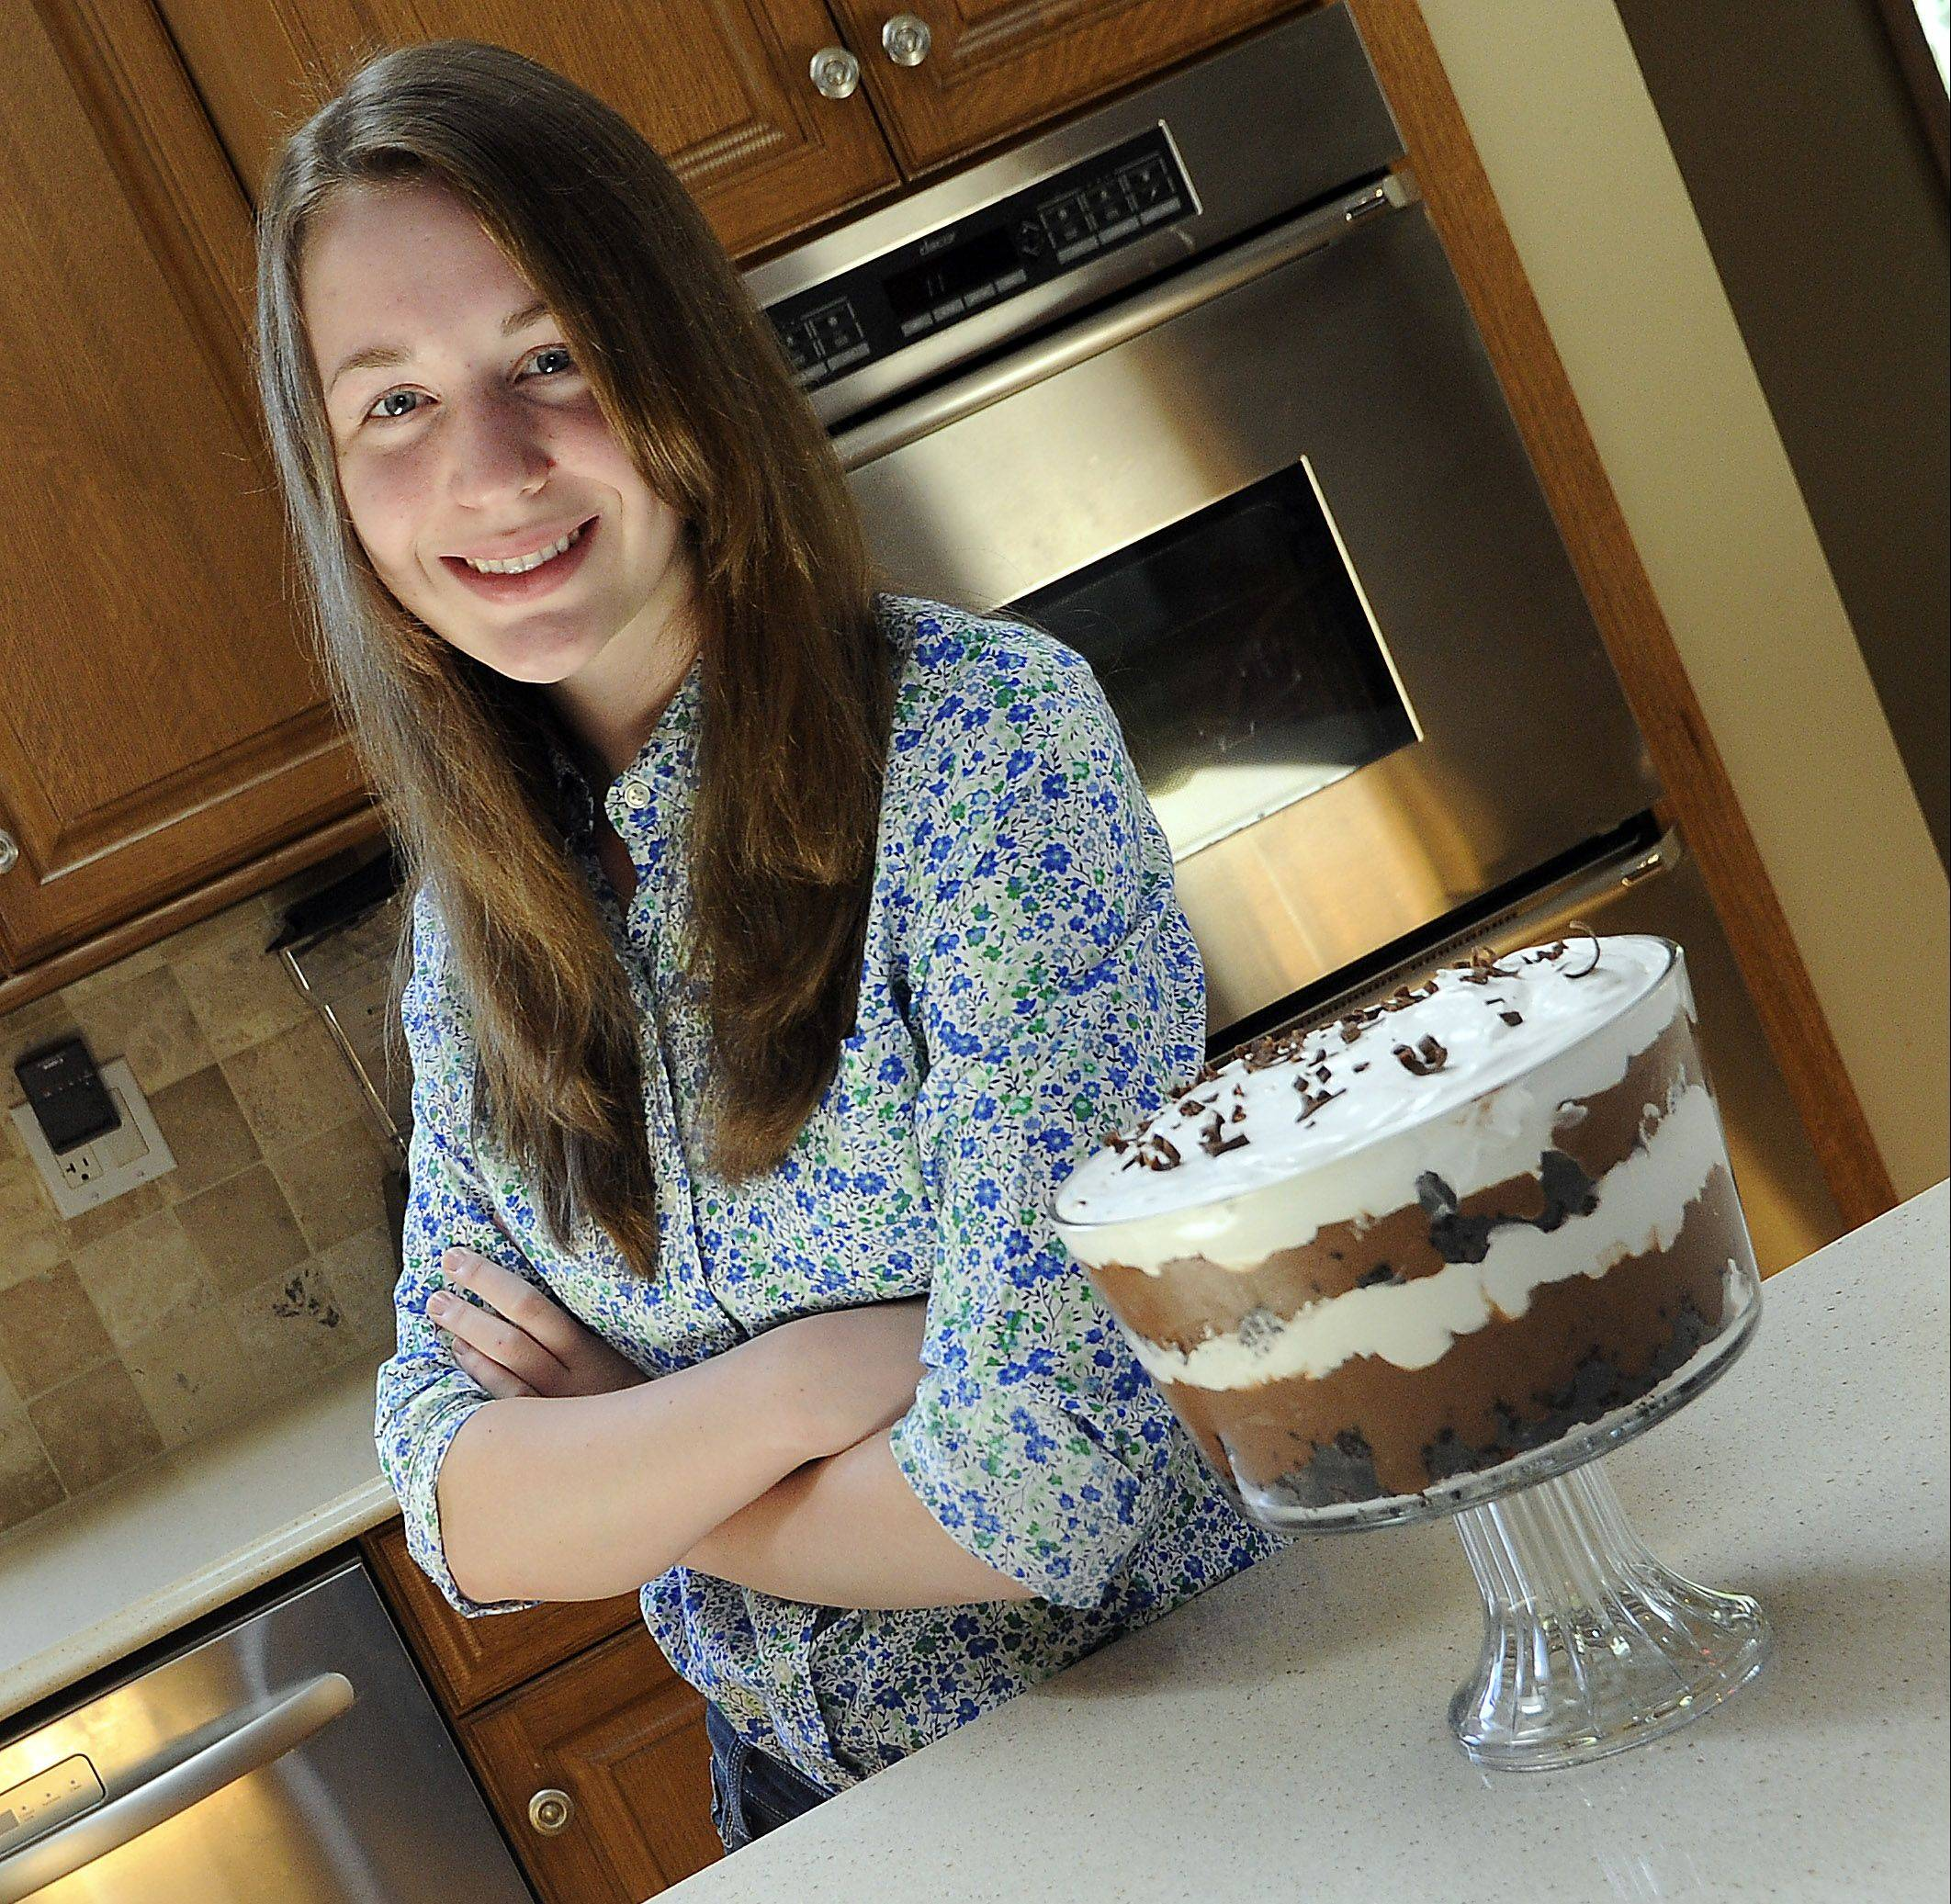 At 16, Danaca Fiedler, is already a seasoned baker. Her Chocolate Mousse Trifle is a favorite among her parents and five siblings.